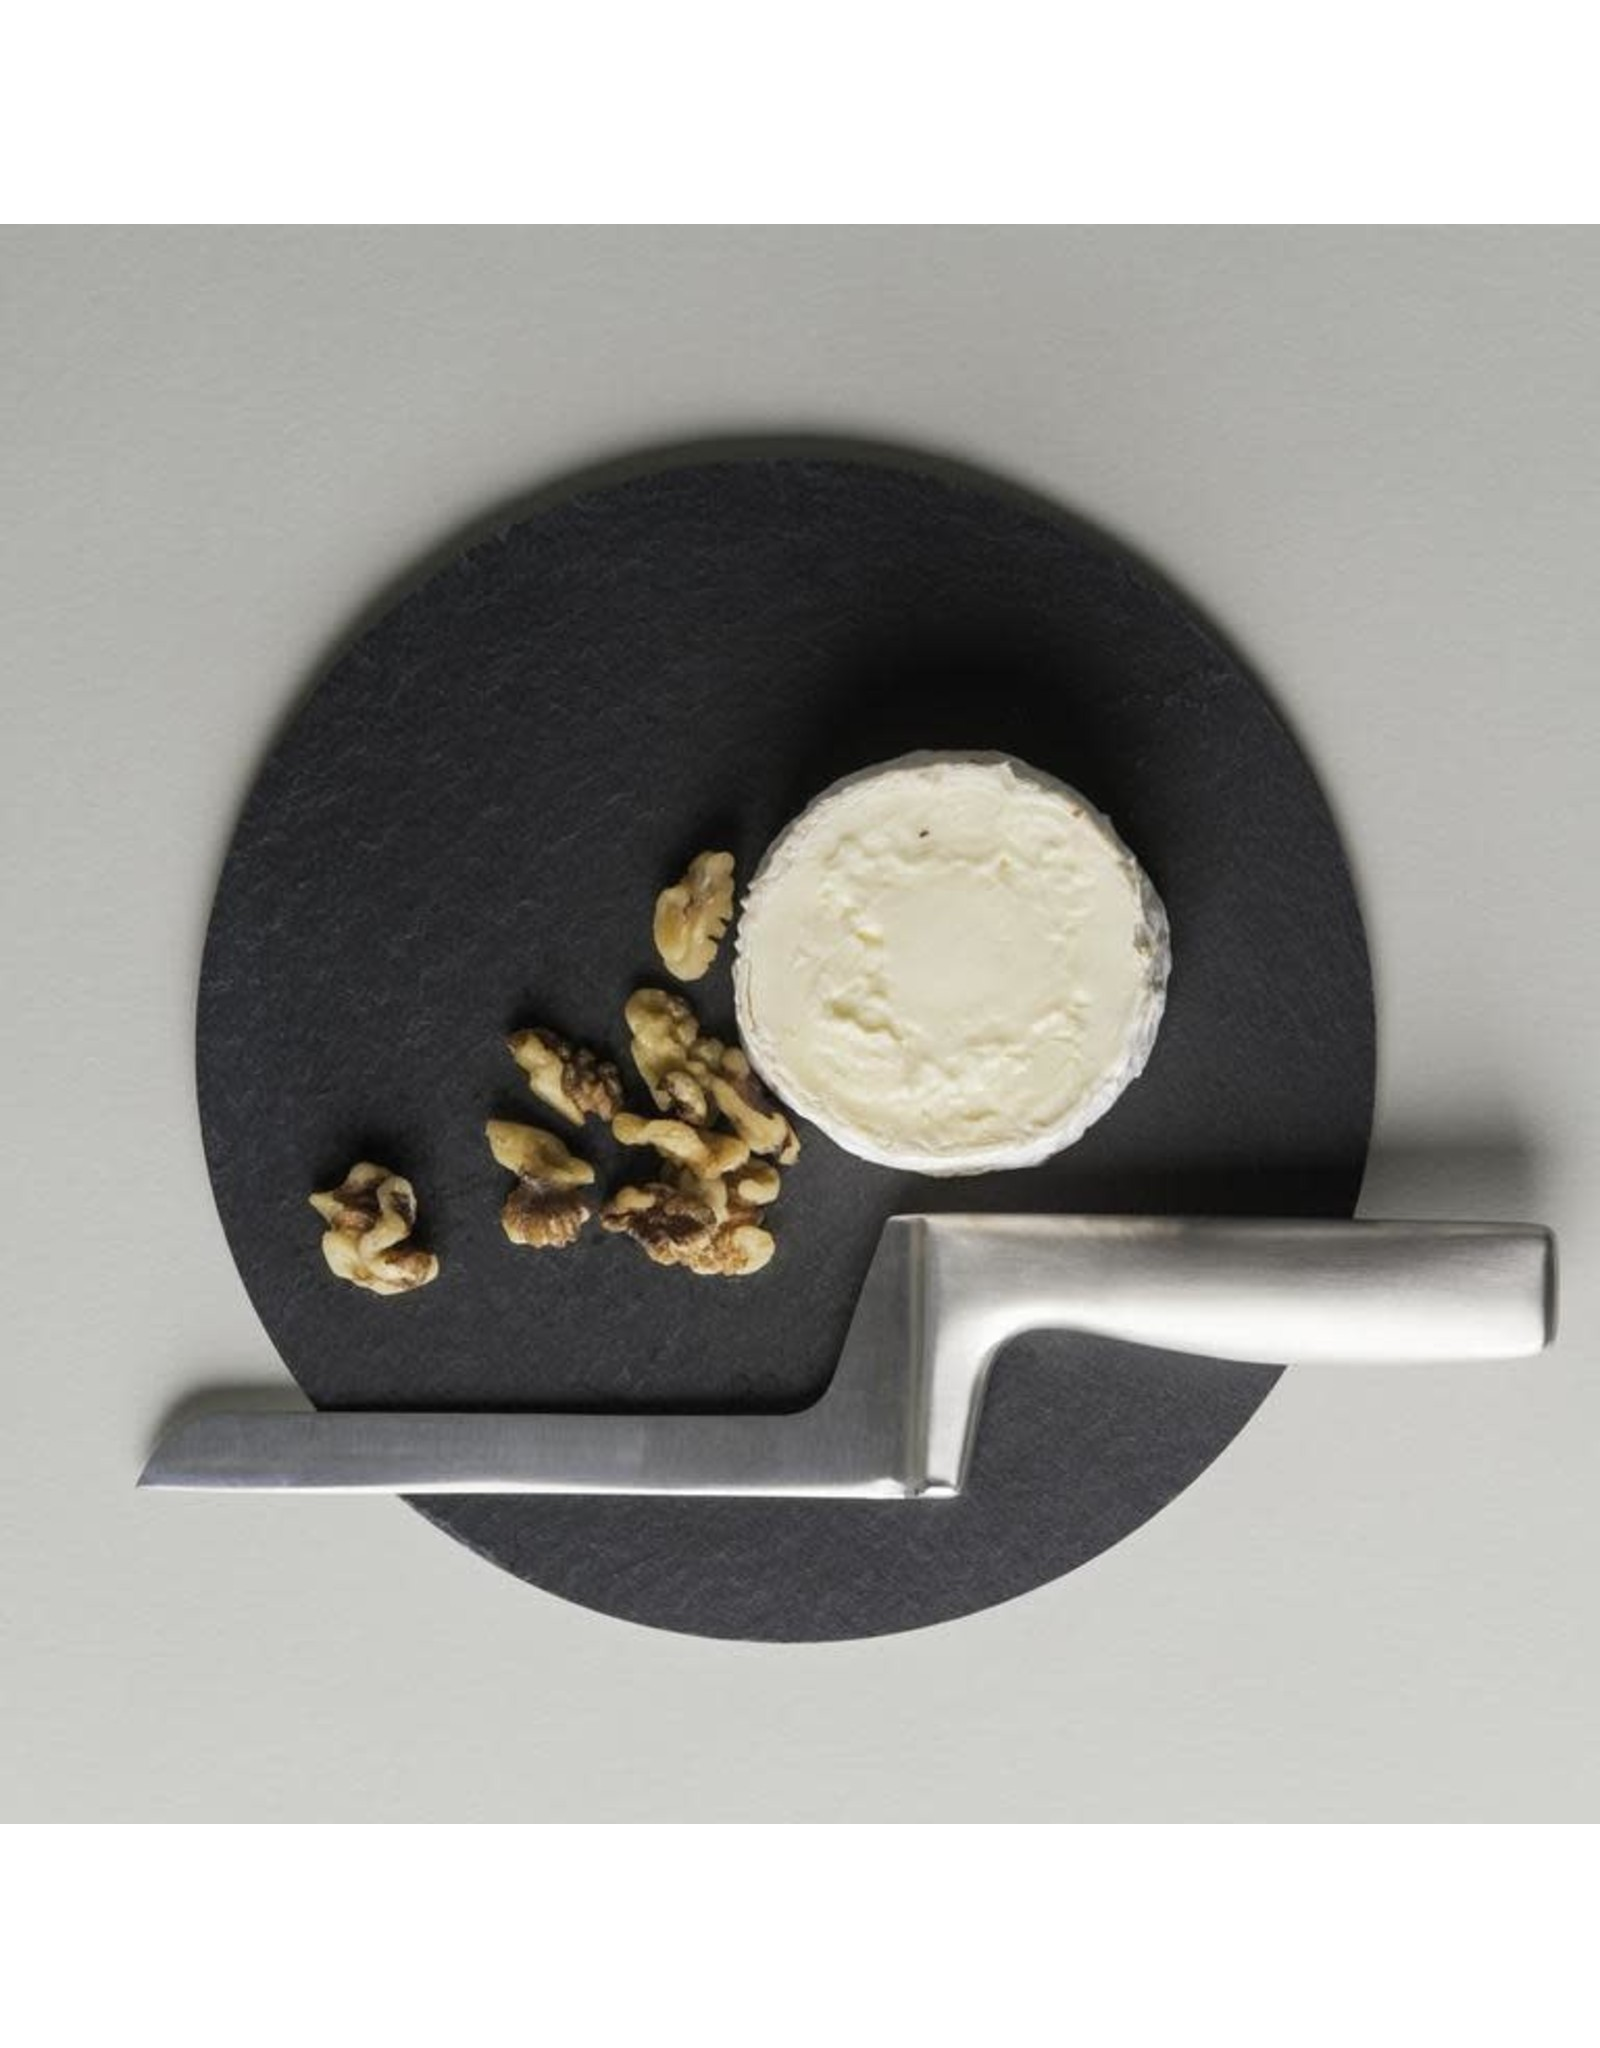 COLLECTIVE TOOLS CHEESE KNIFE